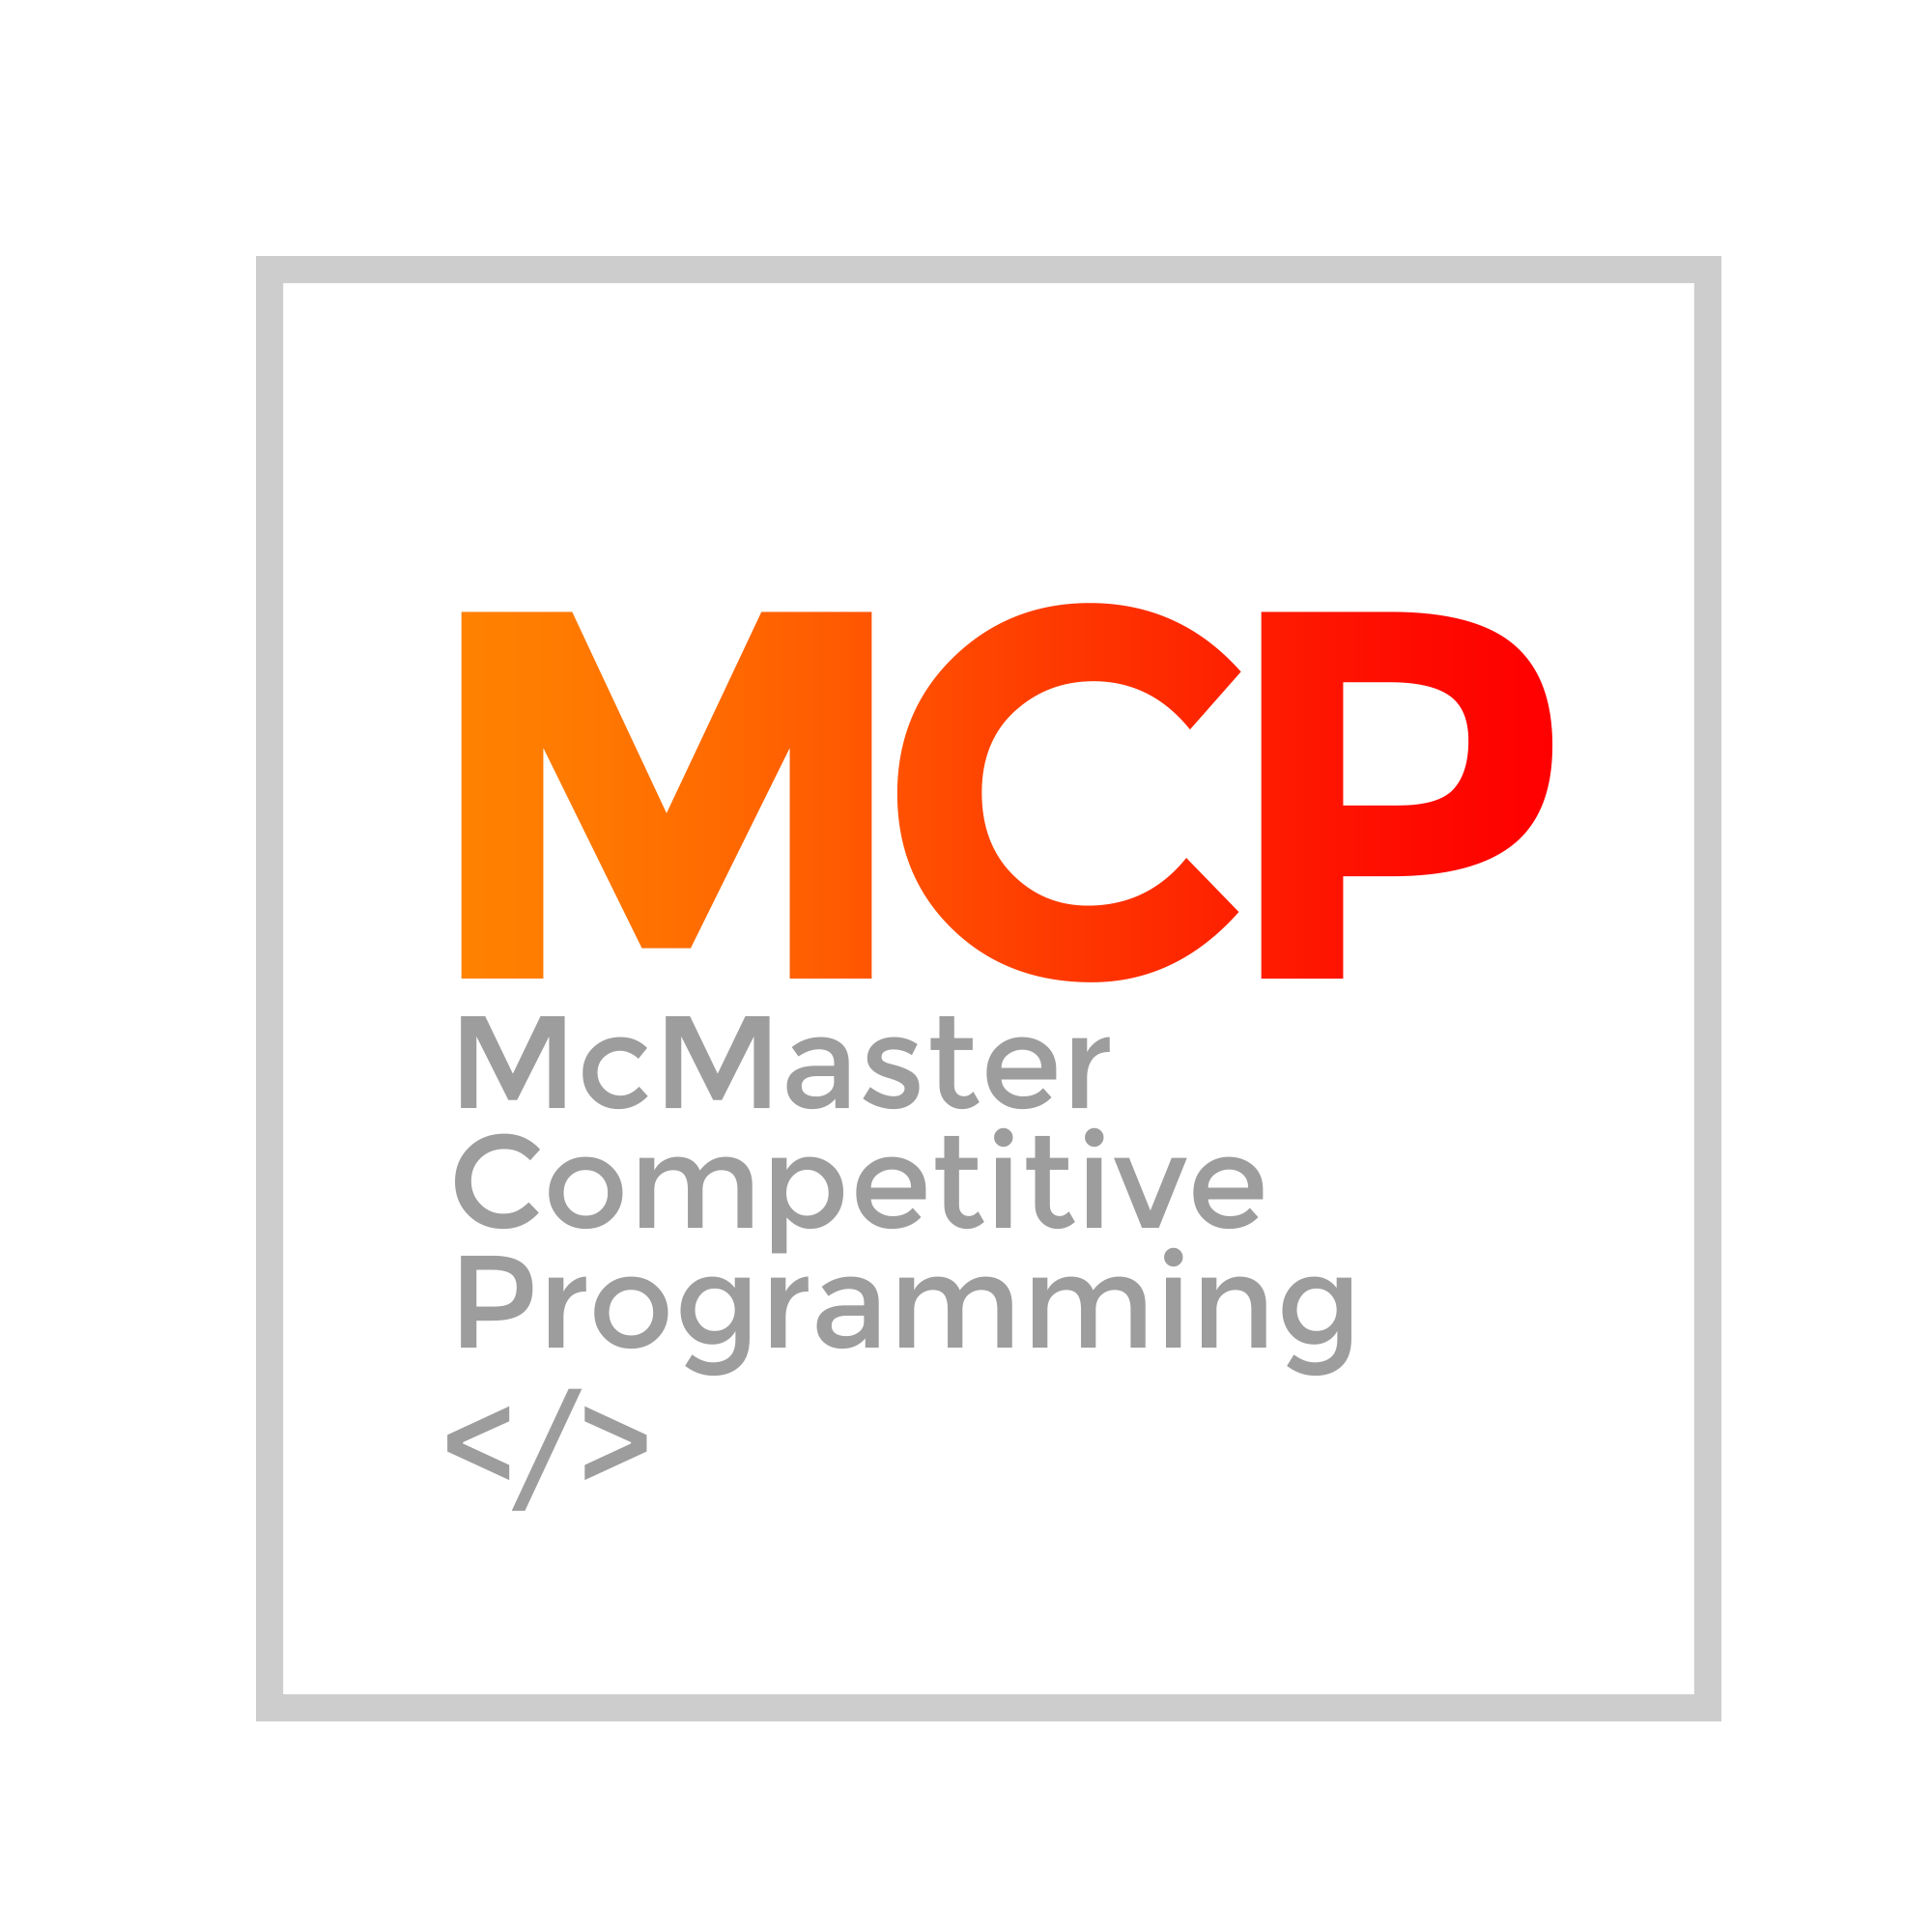 McMaster Competitive Programming